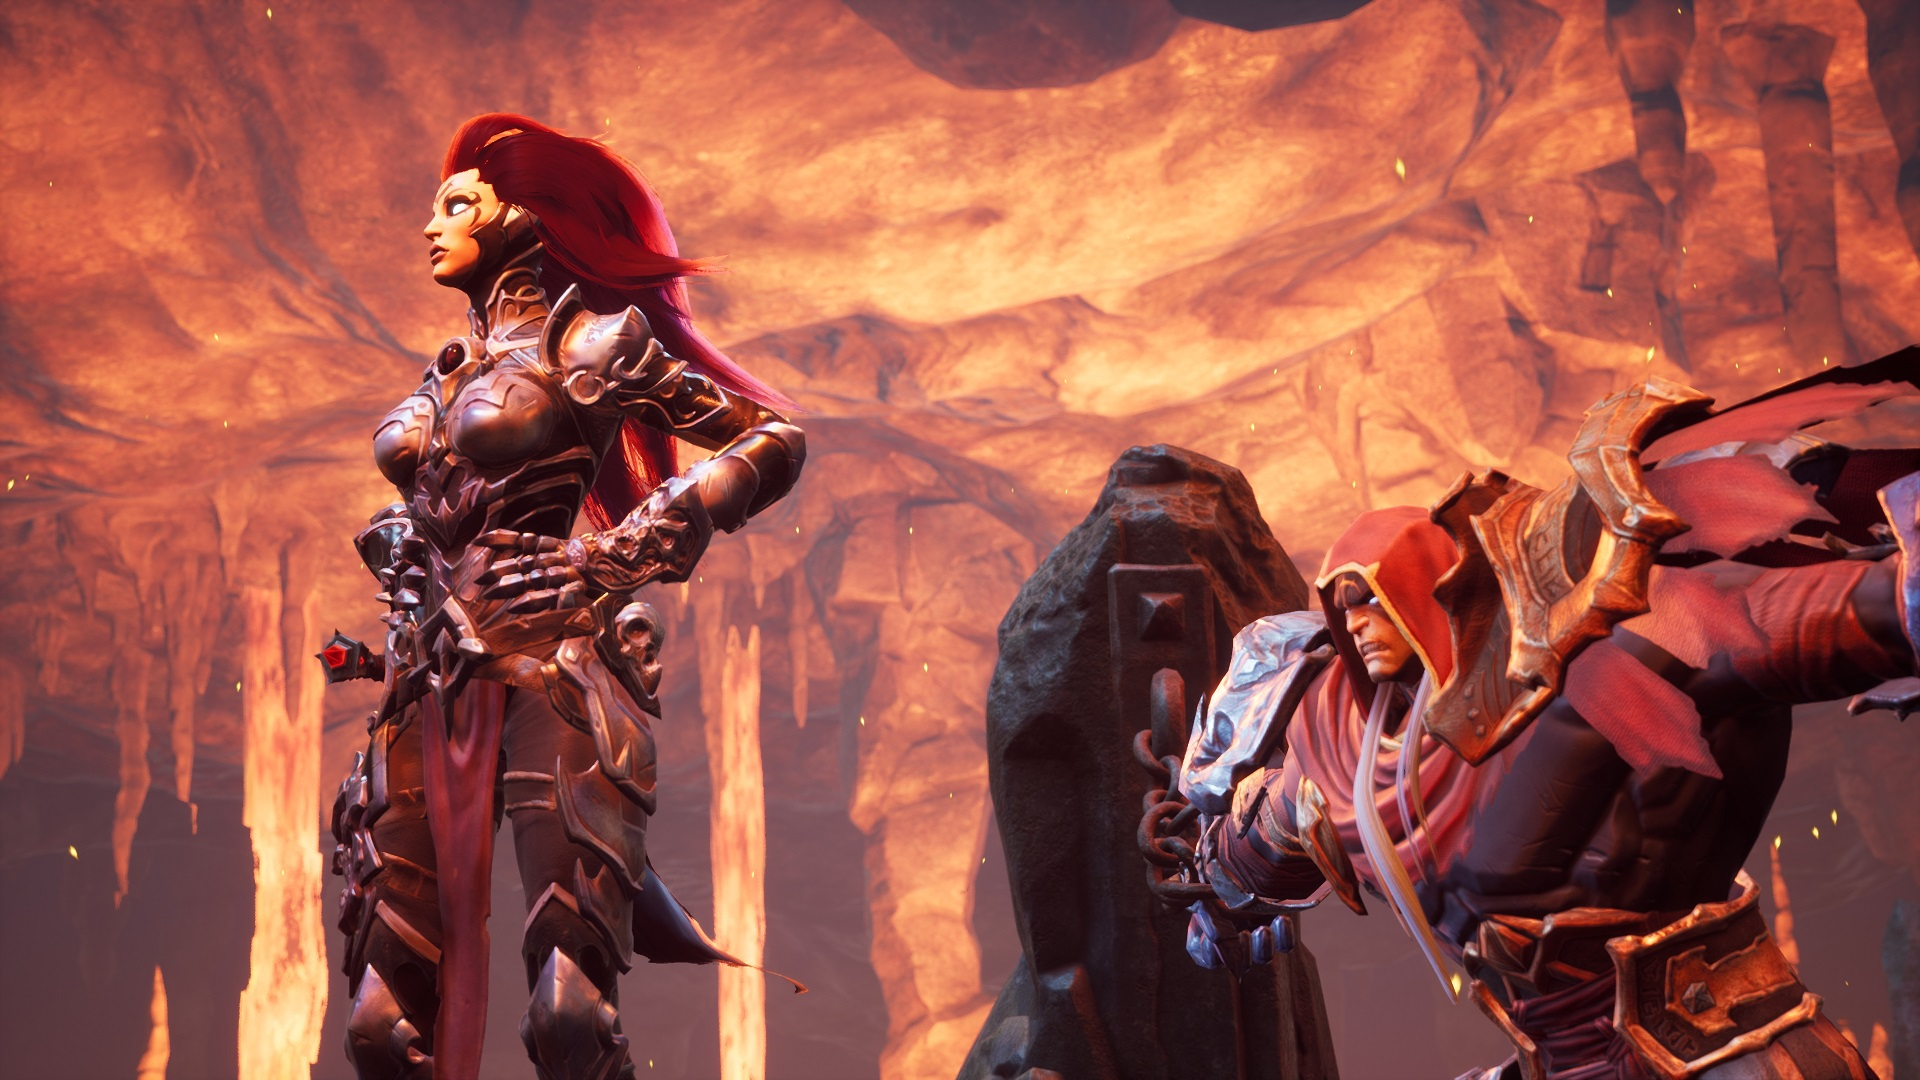 Darksiders III Review - Angry Souls - Niche Gamer